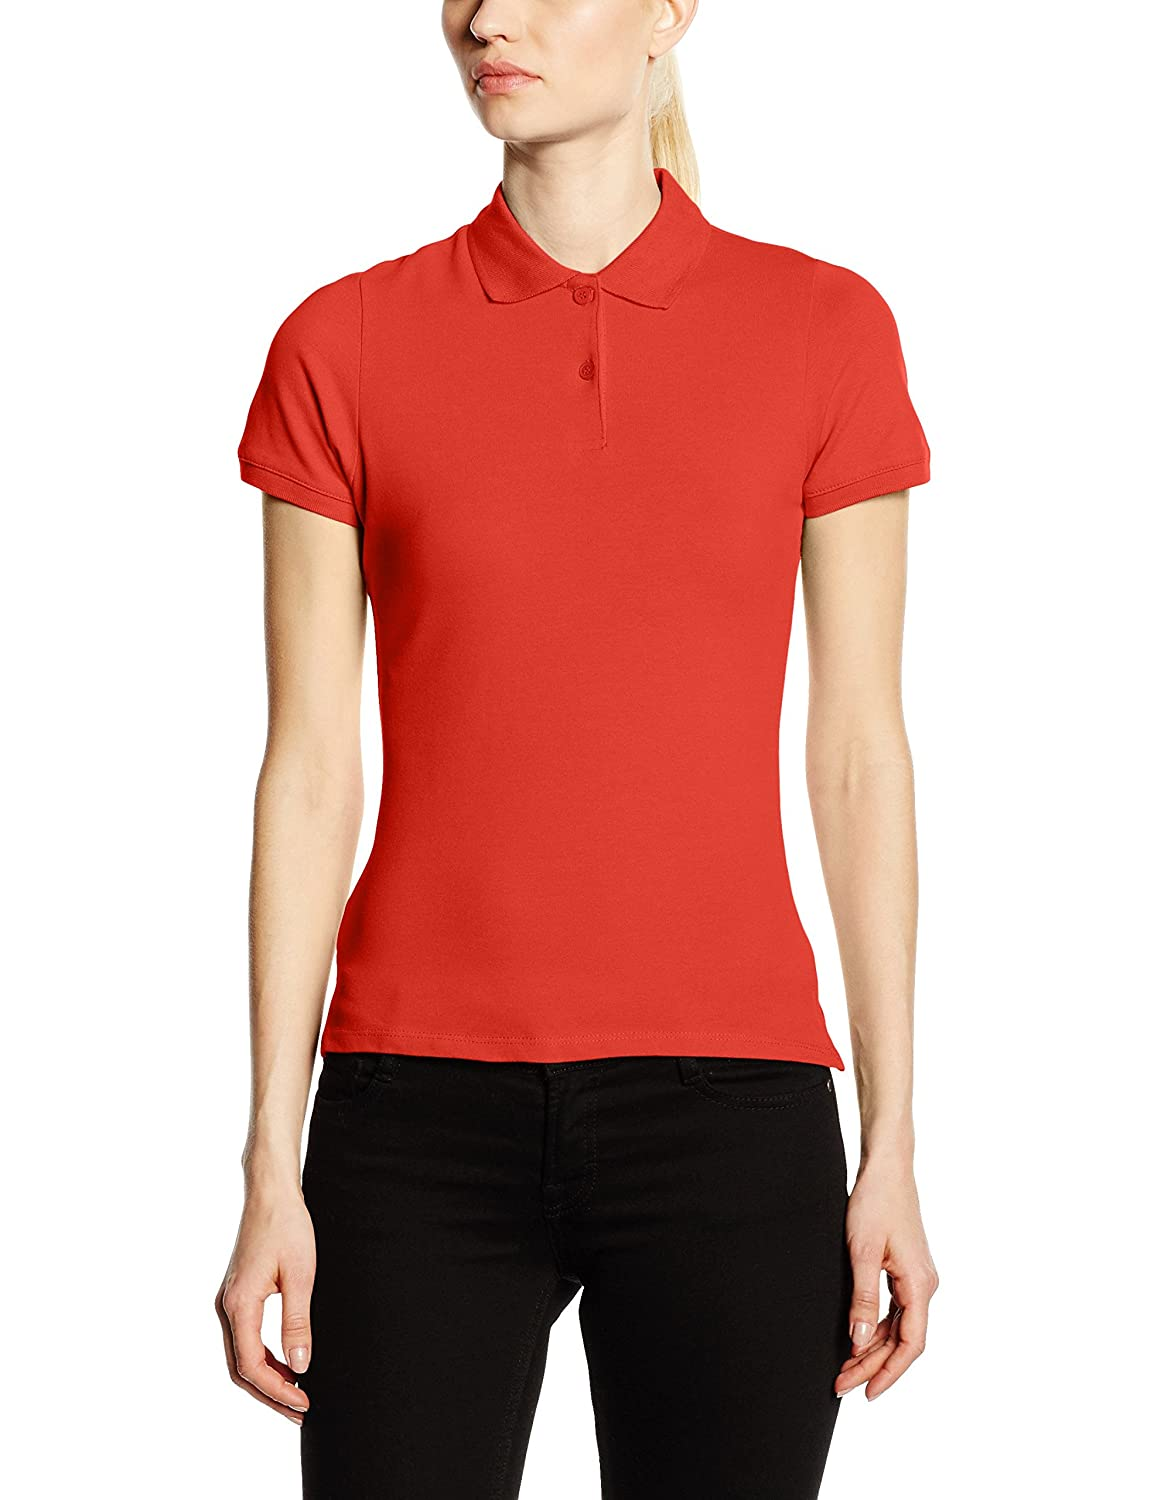 Fruit of the Loom Women's Lady-Fit Polo Shirt 63-560-0